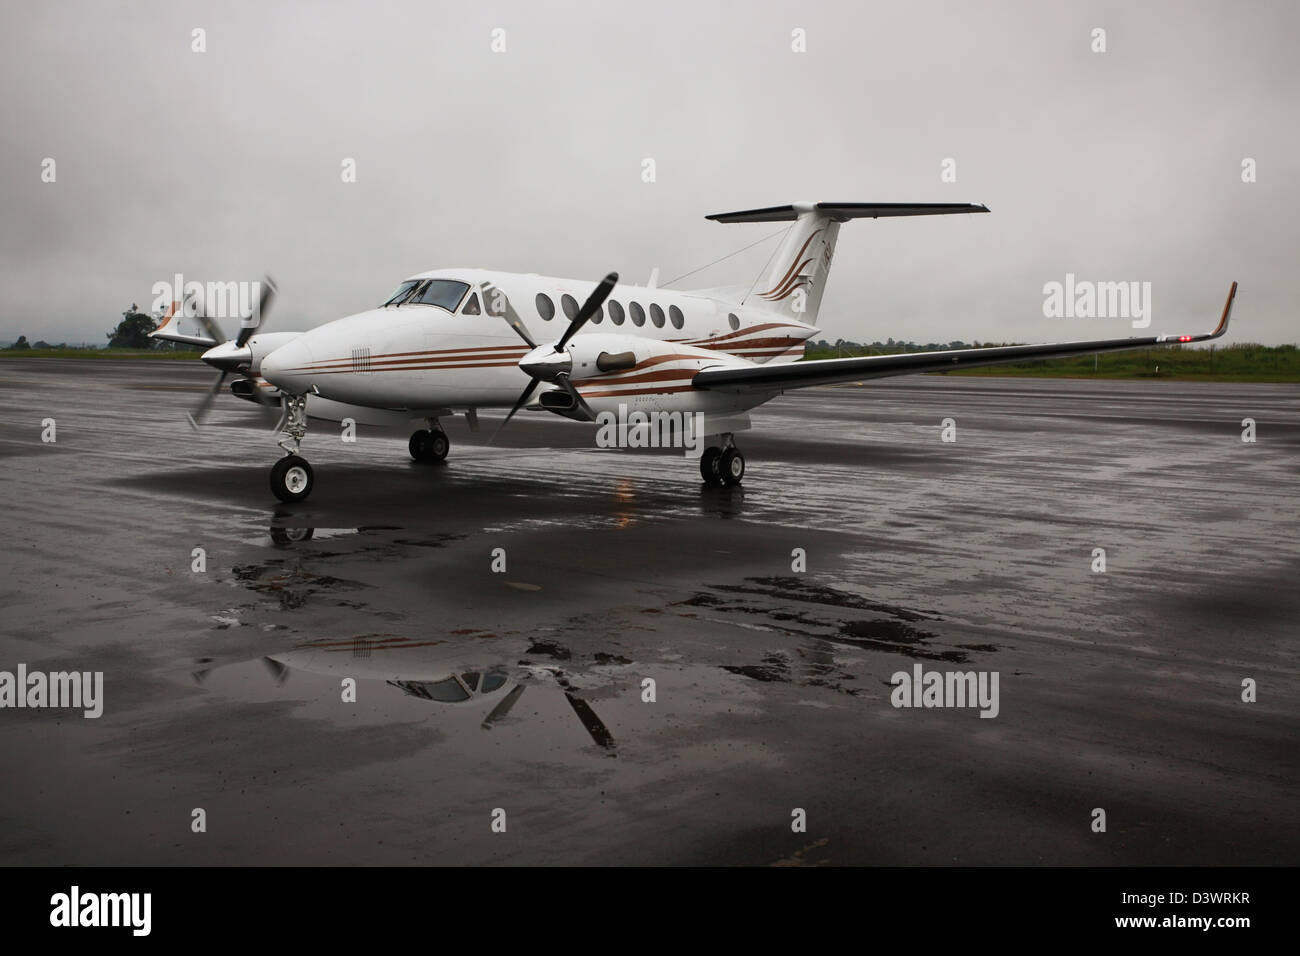 Beechcraft twin engine turboprop First Quantum plane at Solwezi airstrip in light rain - Stock Image